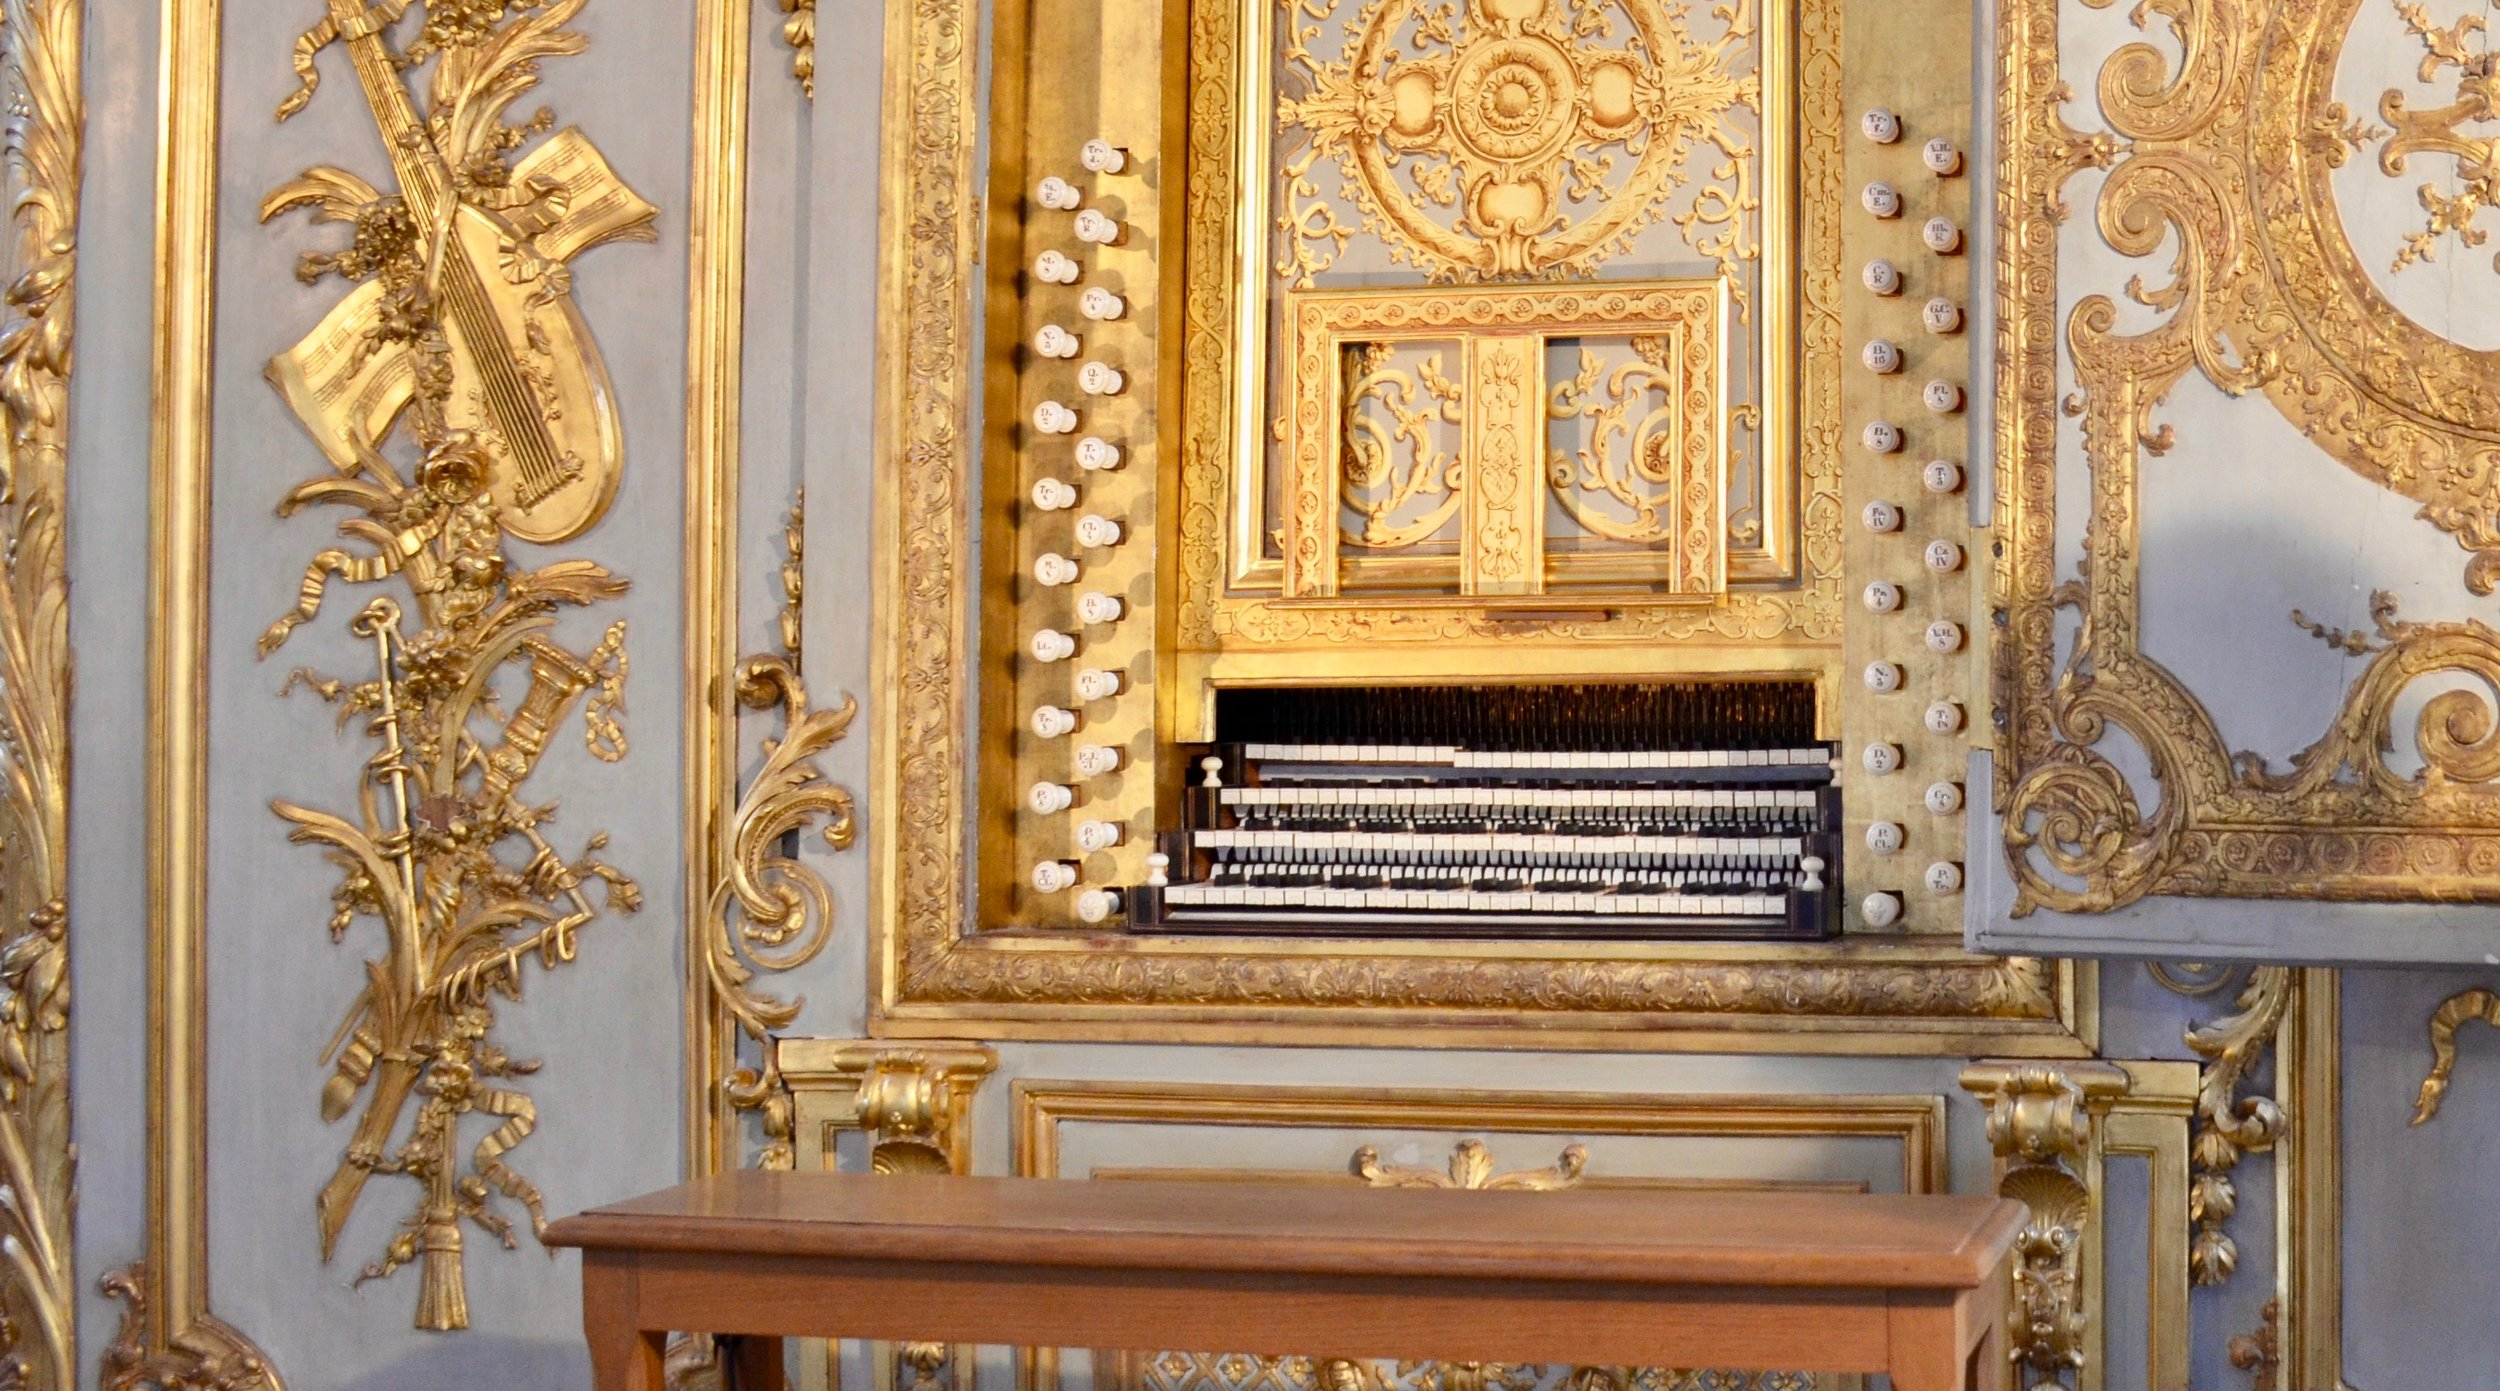 Keydesk of the La Chapelle Royale 0rgan